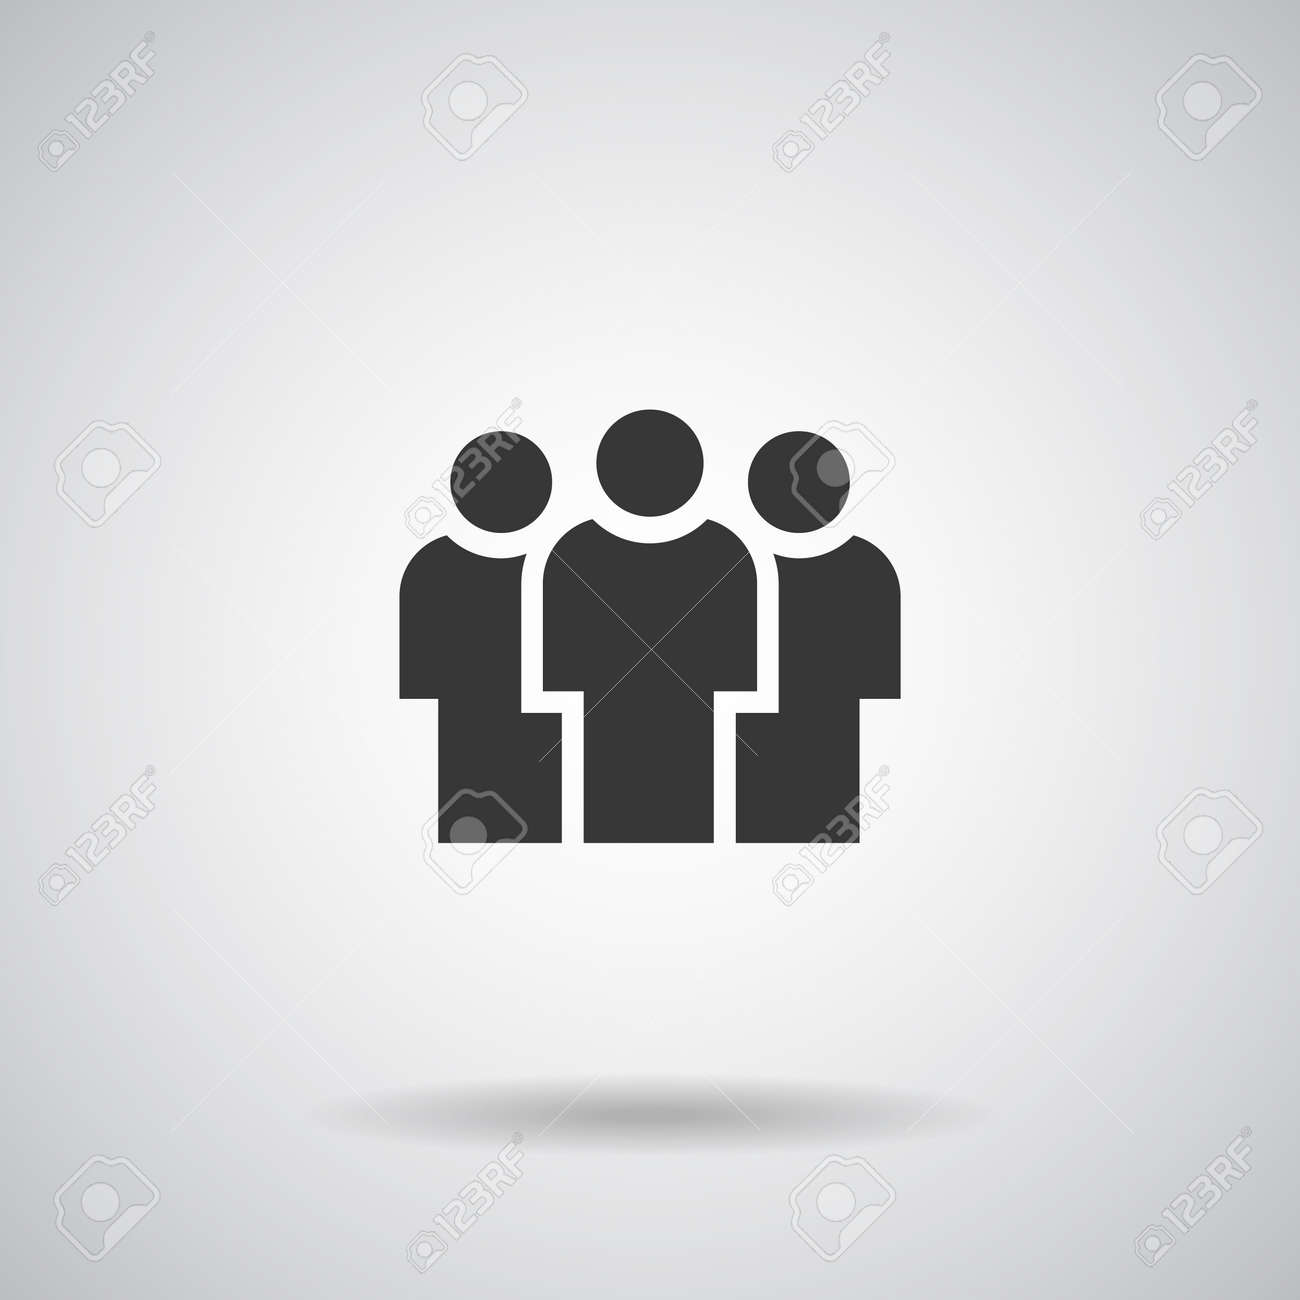 People Icons, Person work group Team Vector - 134588484